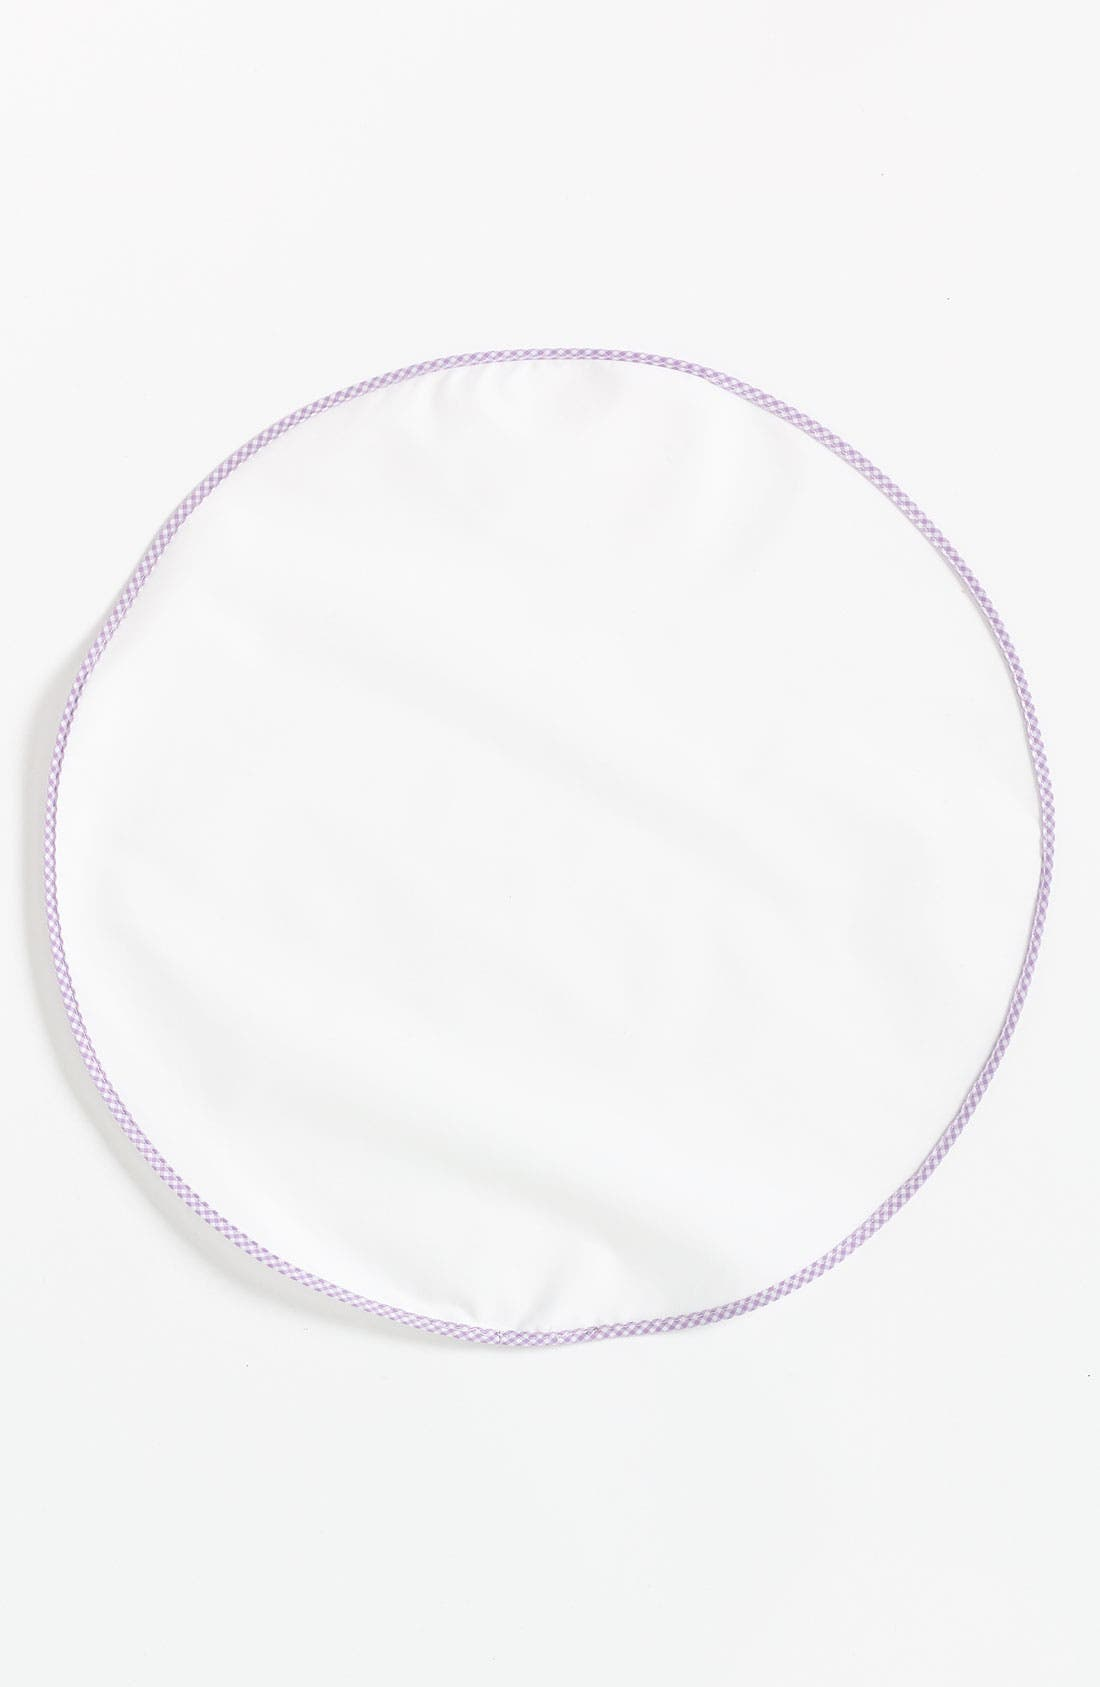 Alternate Image 1 Selected - Edward Armah Circular Pocket Square